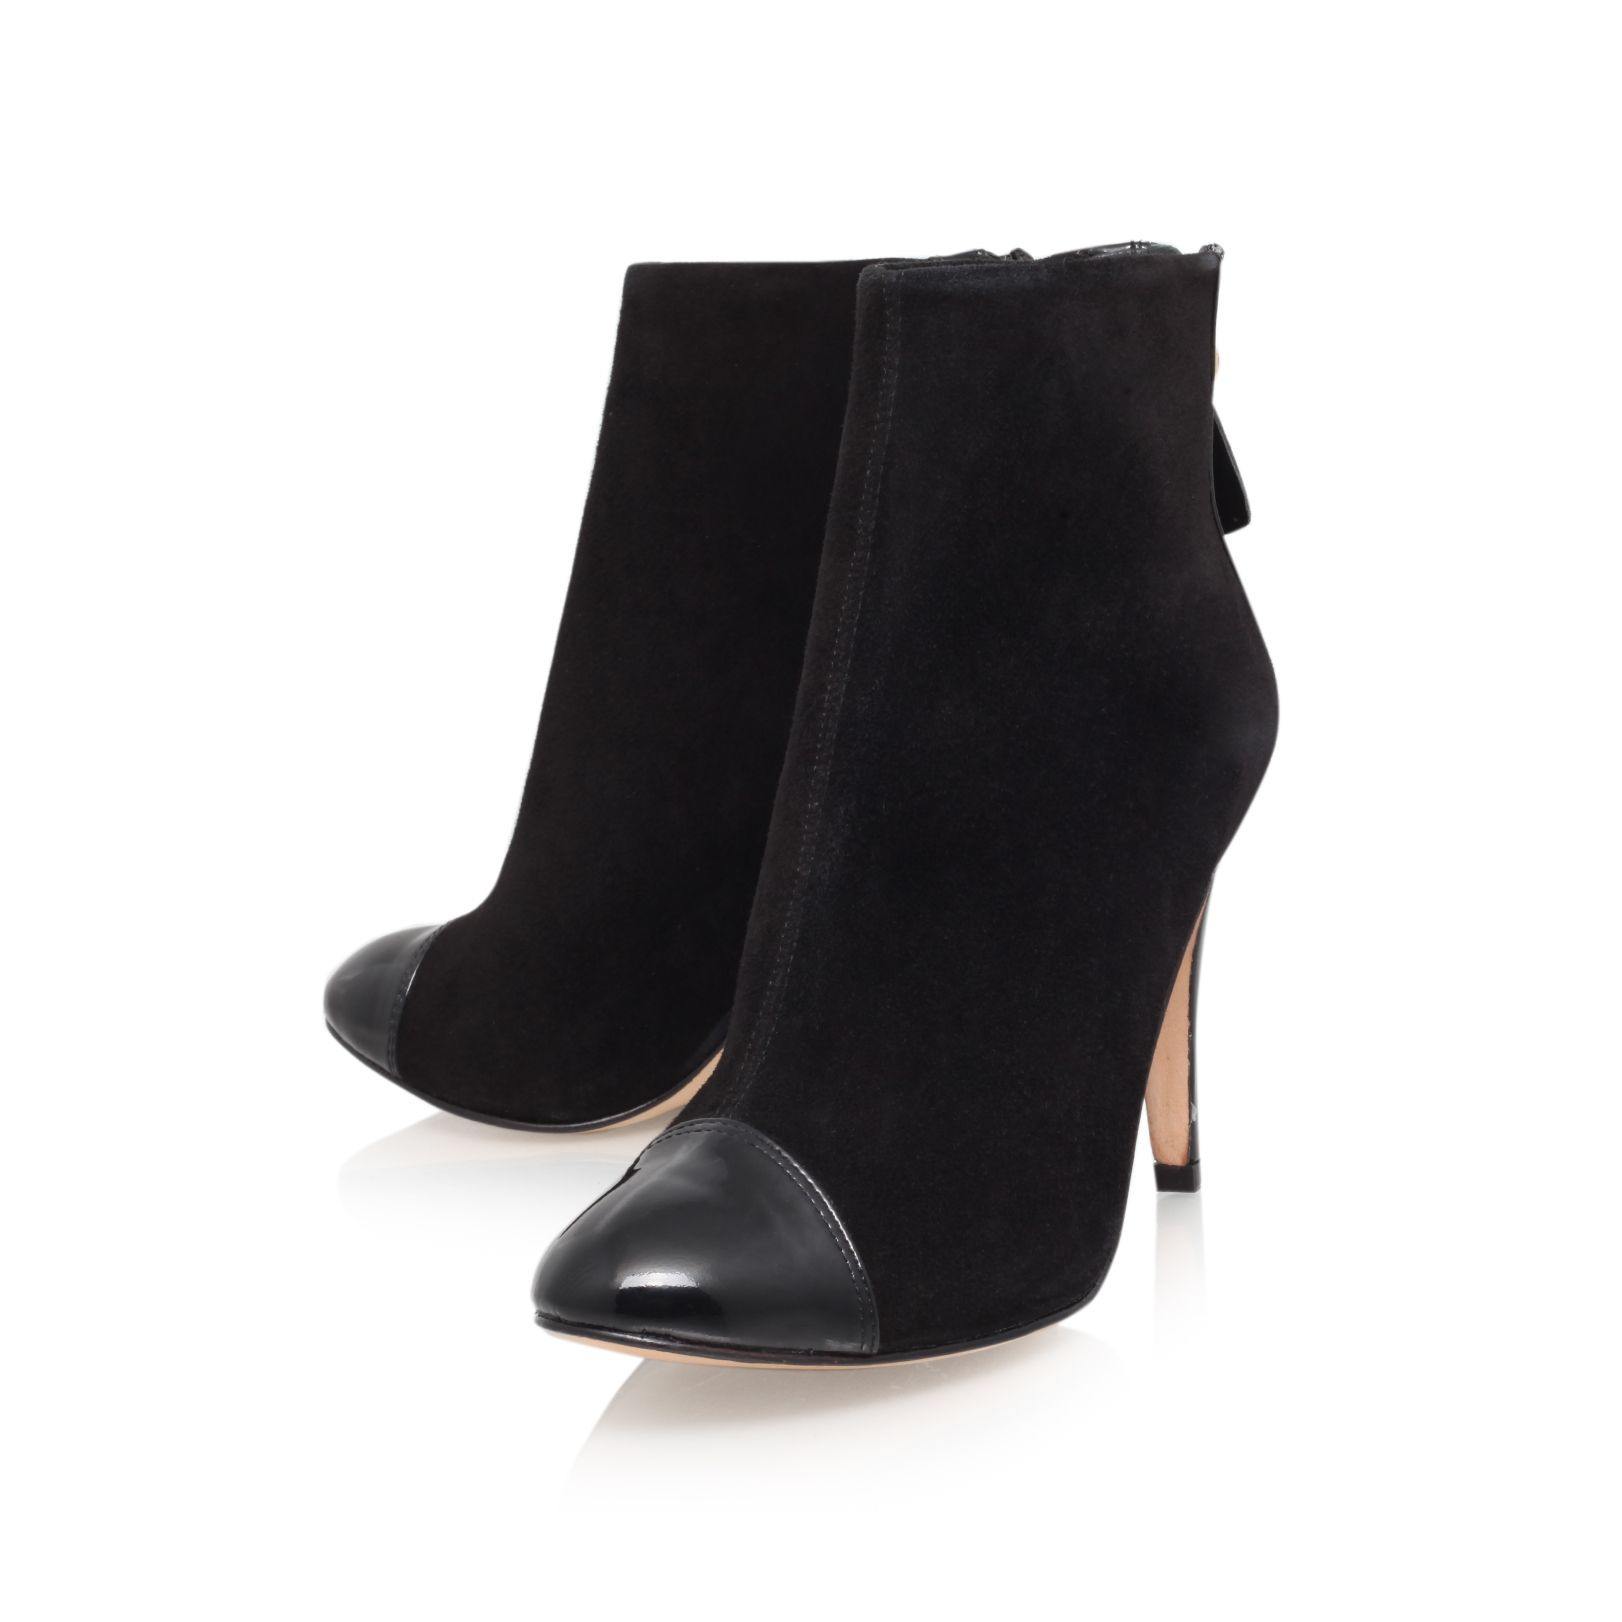 Lucy Choi Leather Genie High Heel Boots in Black